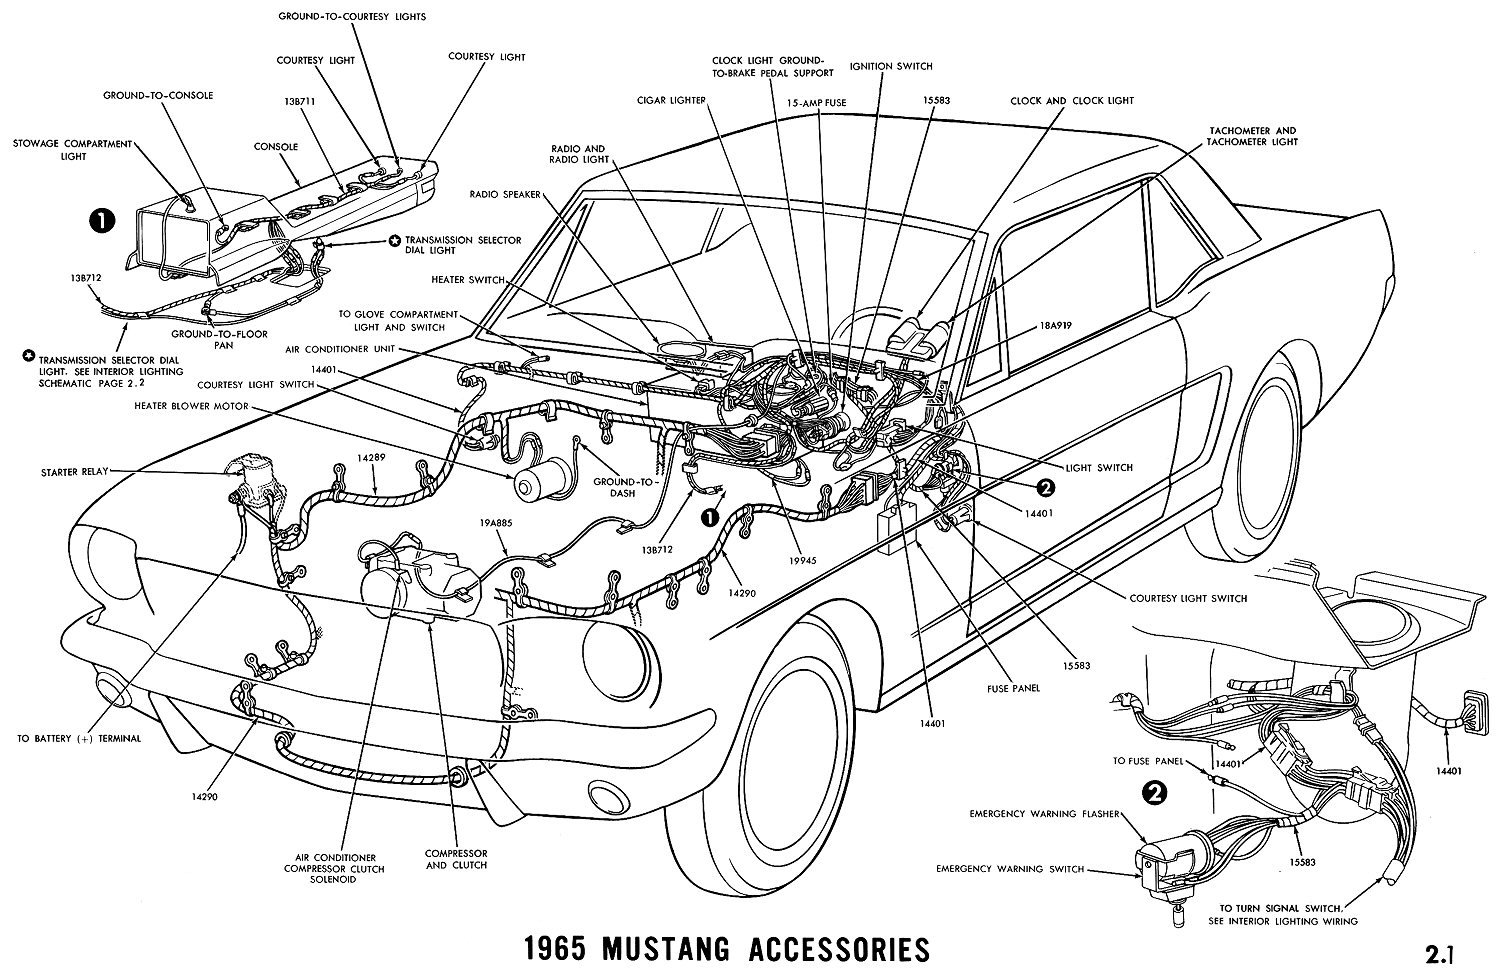 1989 Mustang Fuse Diagram Wiring Library Click Image For Larger Version Name 1965h Views Size 3149